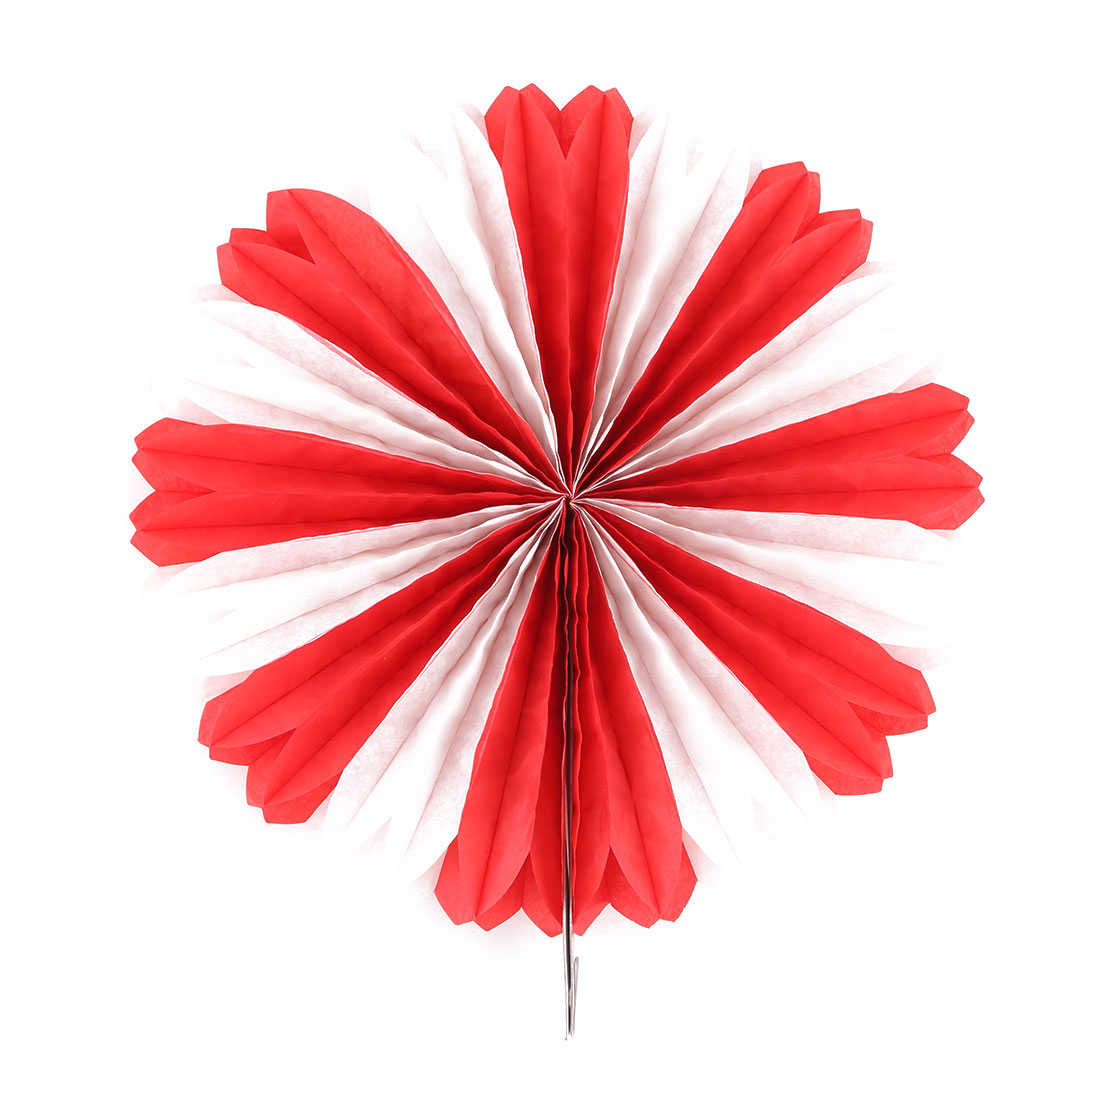 Paper Hollow Out Folding Fan Flower Red for Party Birthday Shower Festival Wedding Home Decor